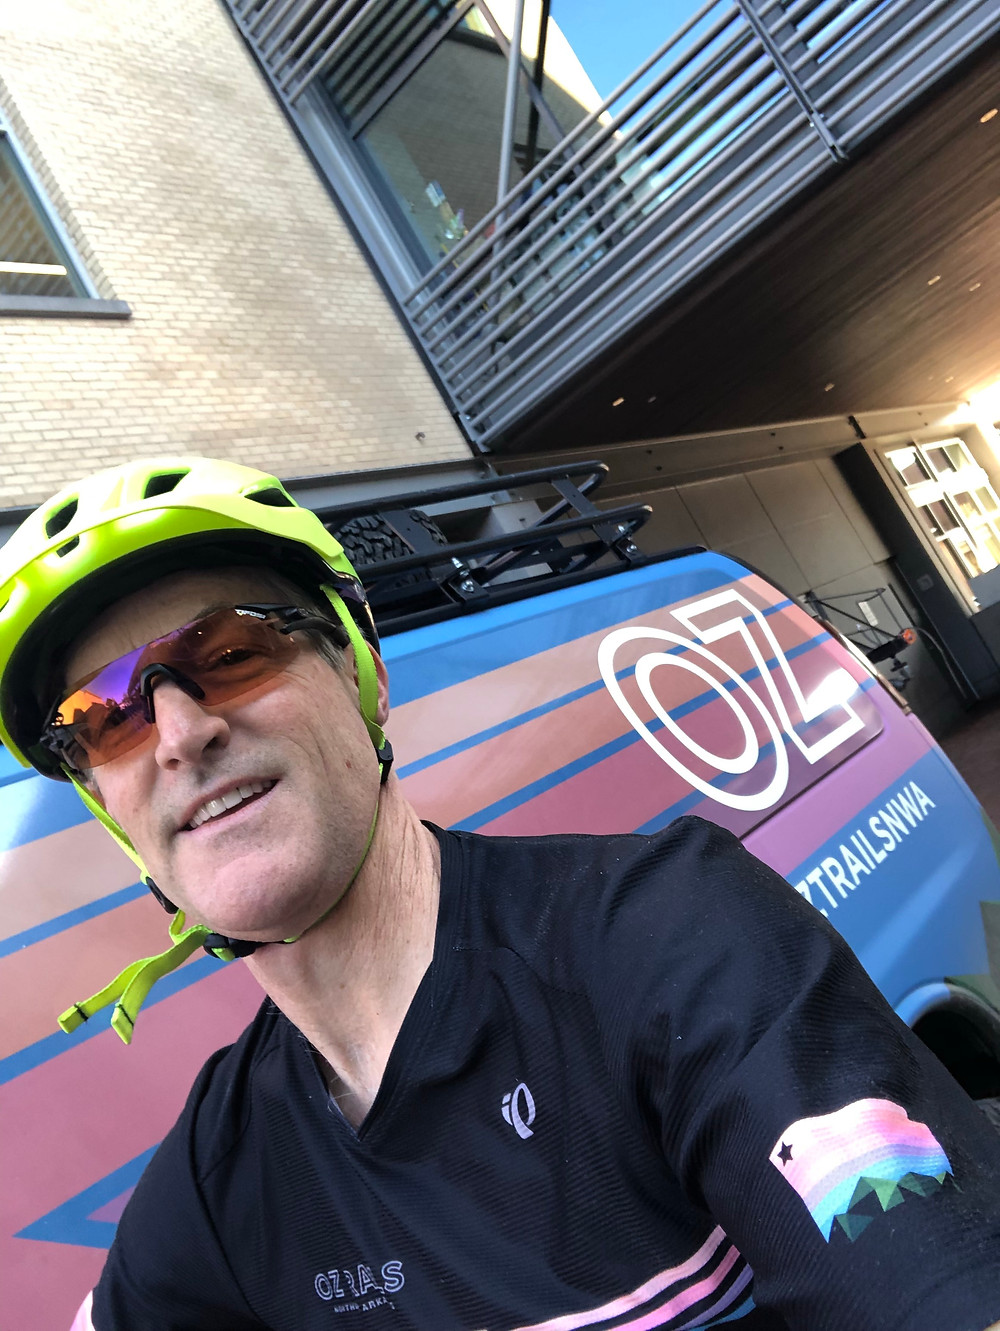 Erik in front of an OZ trails van. This is an example of the rainbow branding Gary mentioned in the podcast.